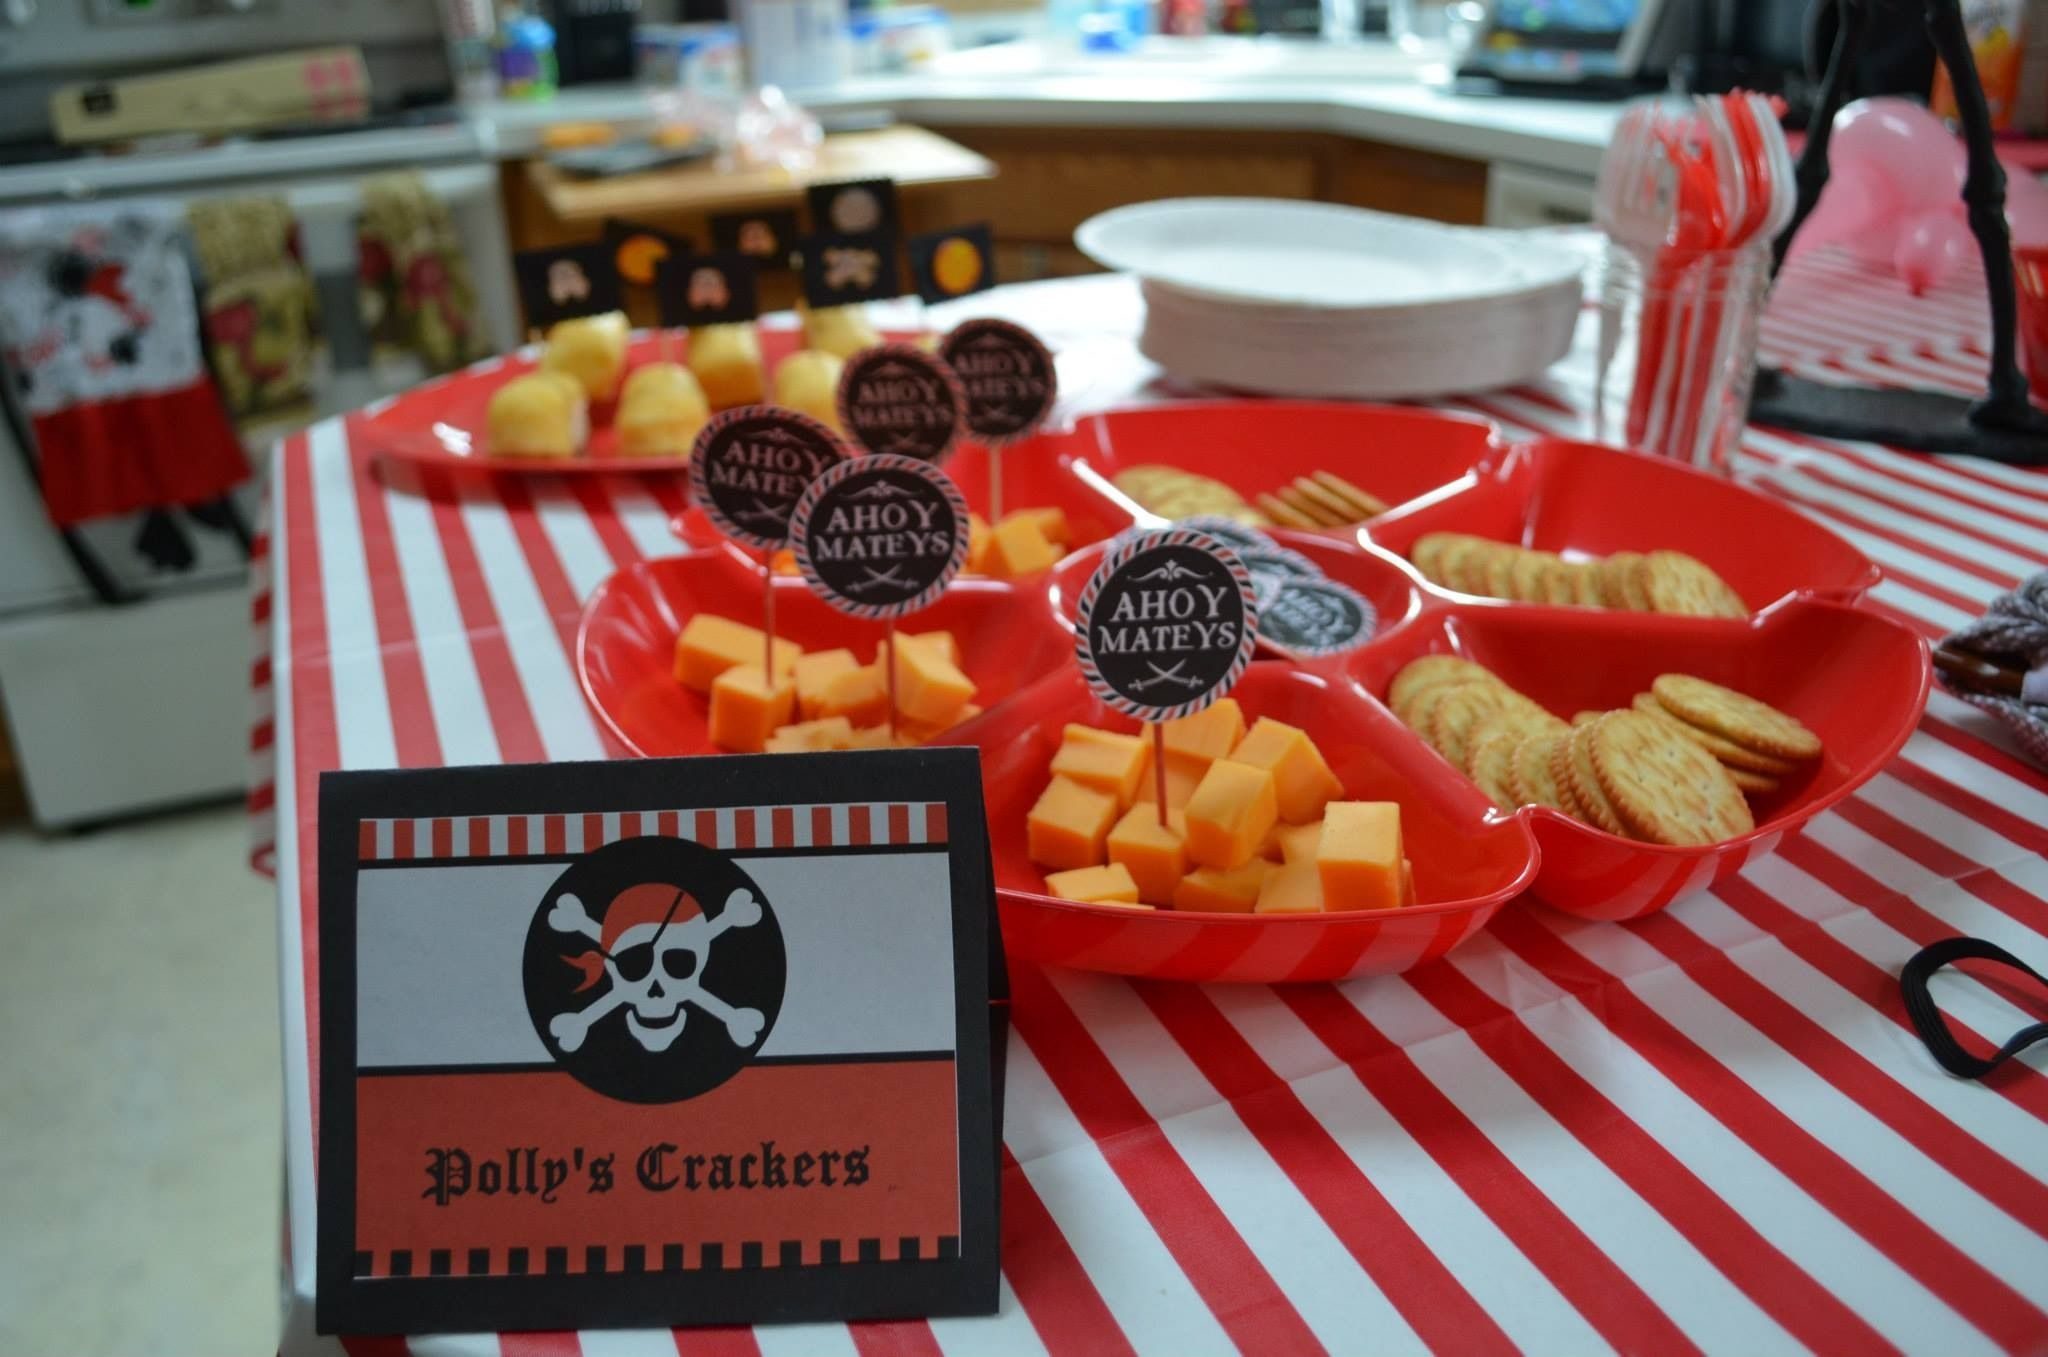 Polly's crackers for a pirate birthday party